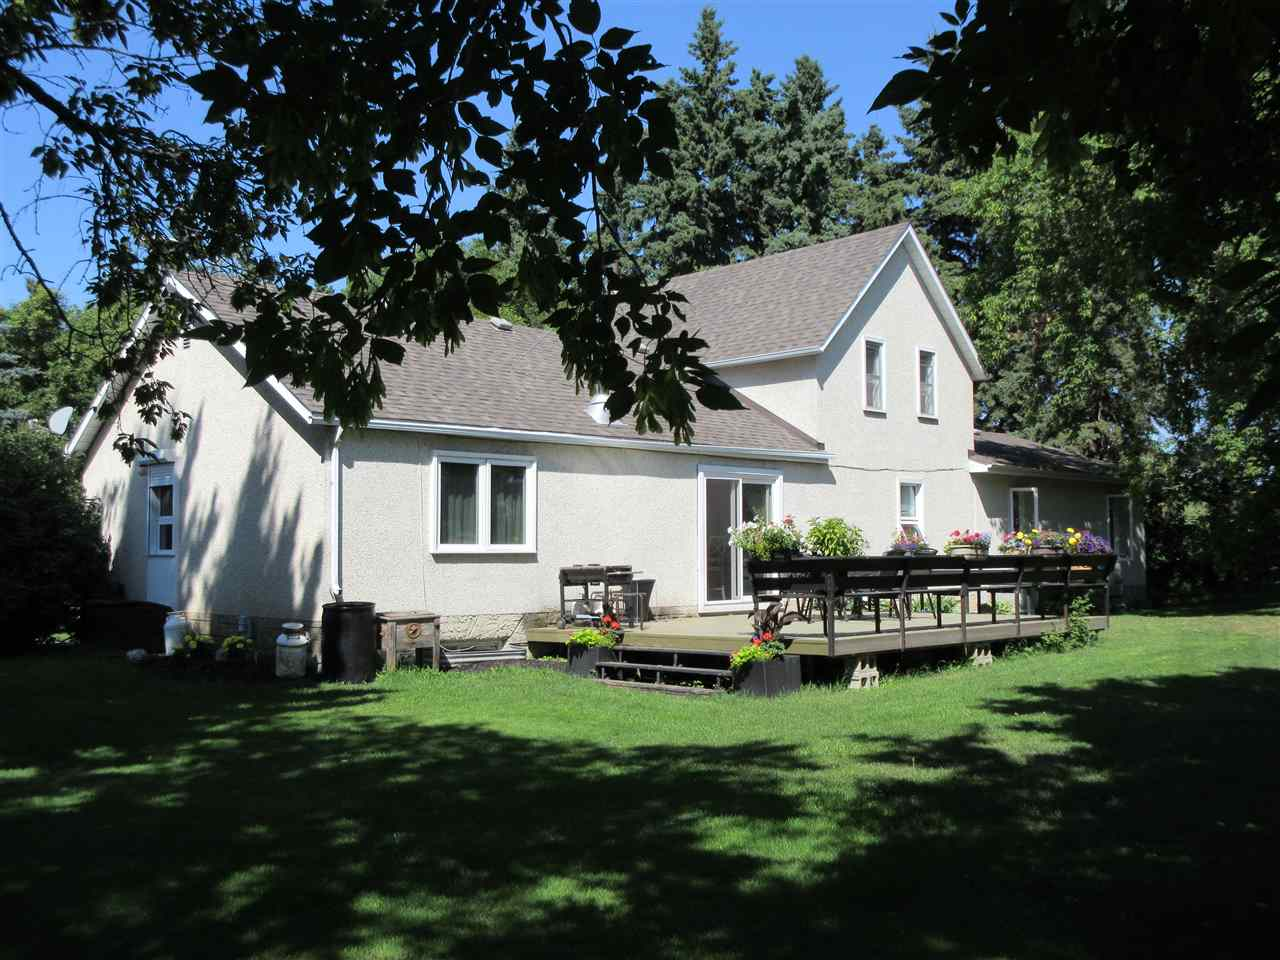 Main Photo: 23308 Twp Rd 560: Rural Sturgeon County House for sale : MLS® # E4076144